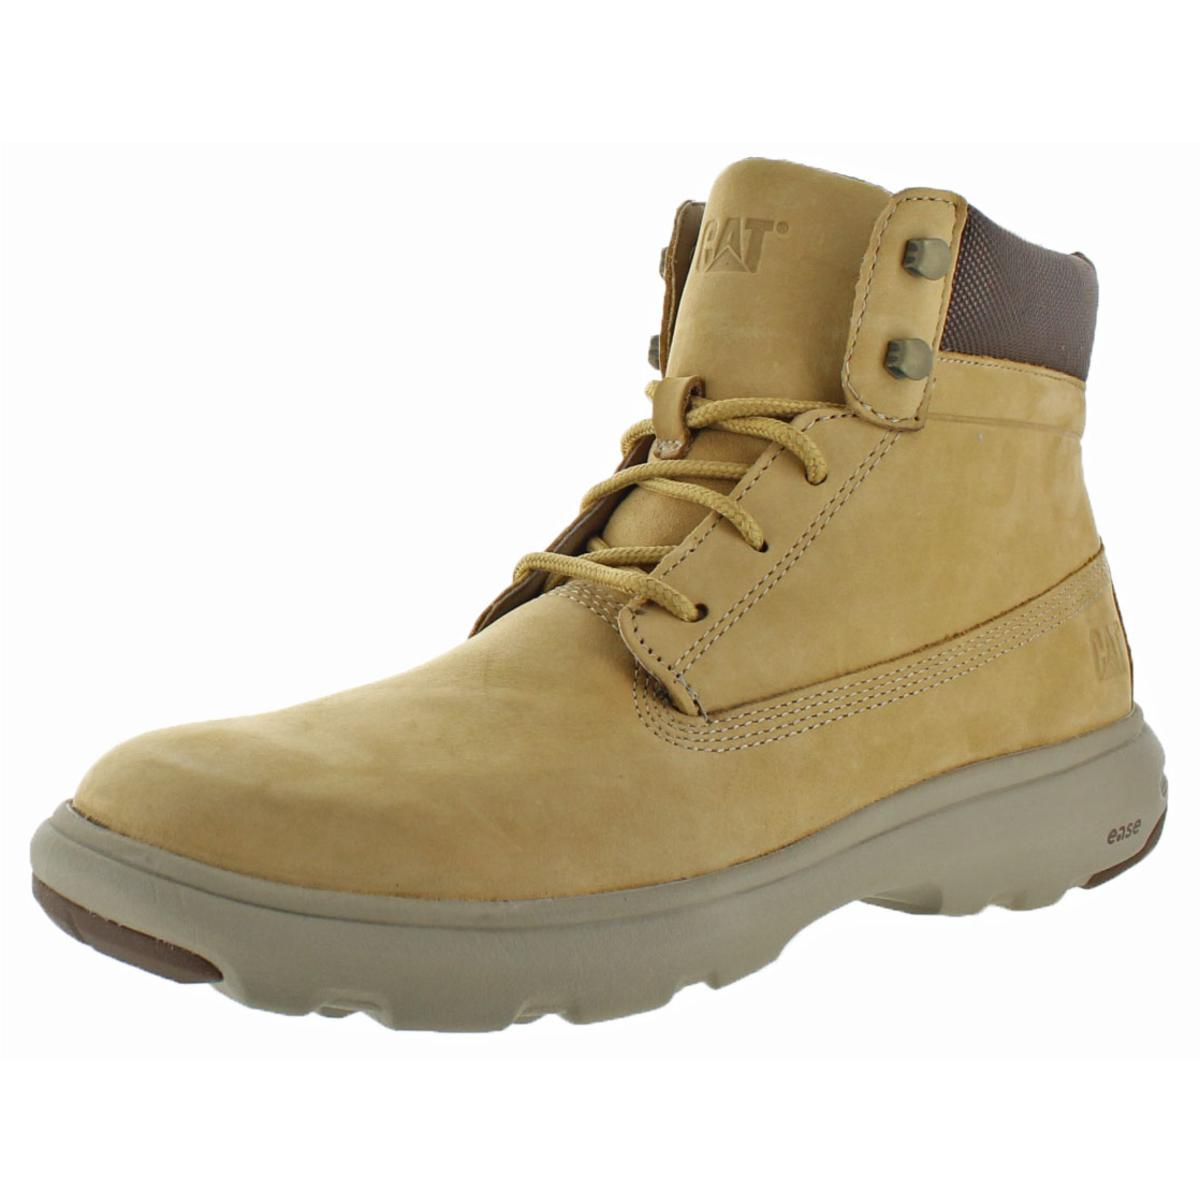 Clothing, Shoes & Accessories Dedicated Leather Safety Work Boots Lightweight Comfort Steel Toe Womens Caterpillar Tan